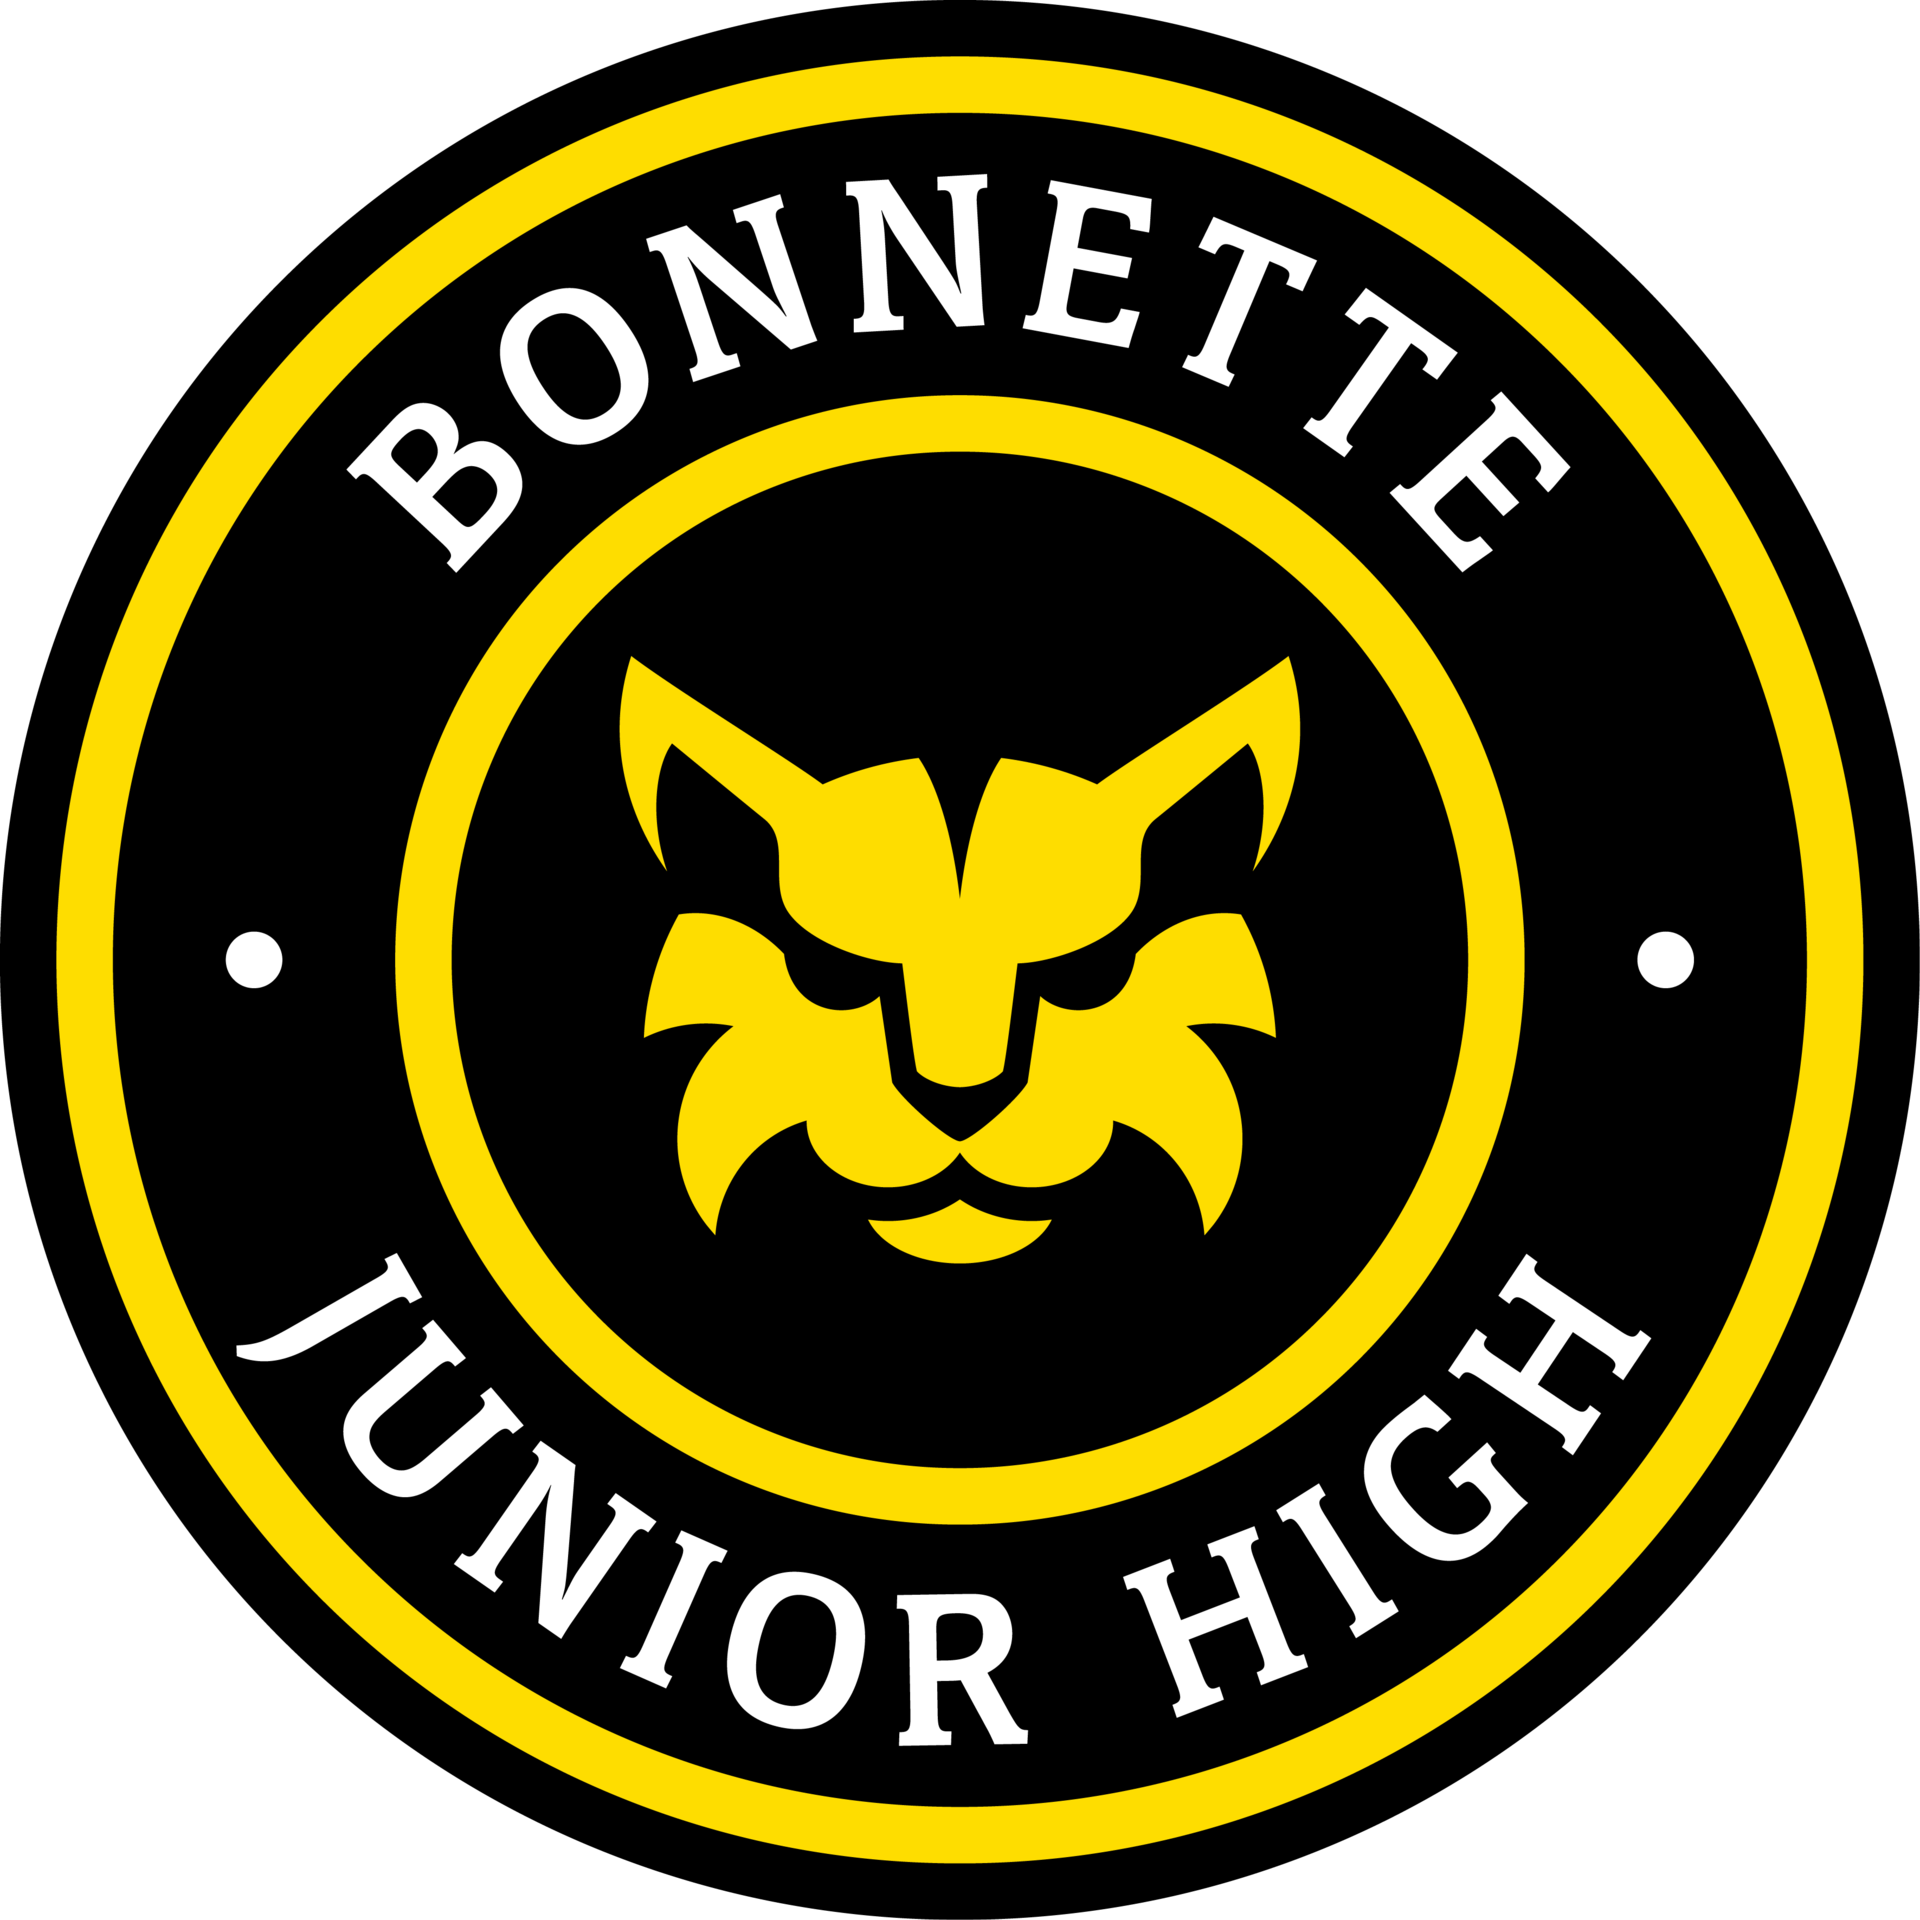 Bonnette Junior High school seal